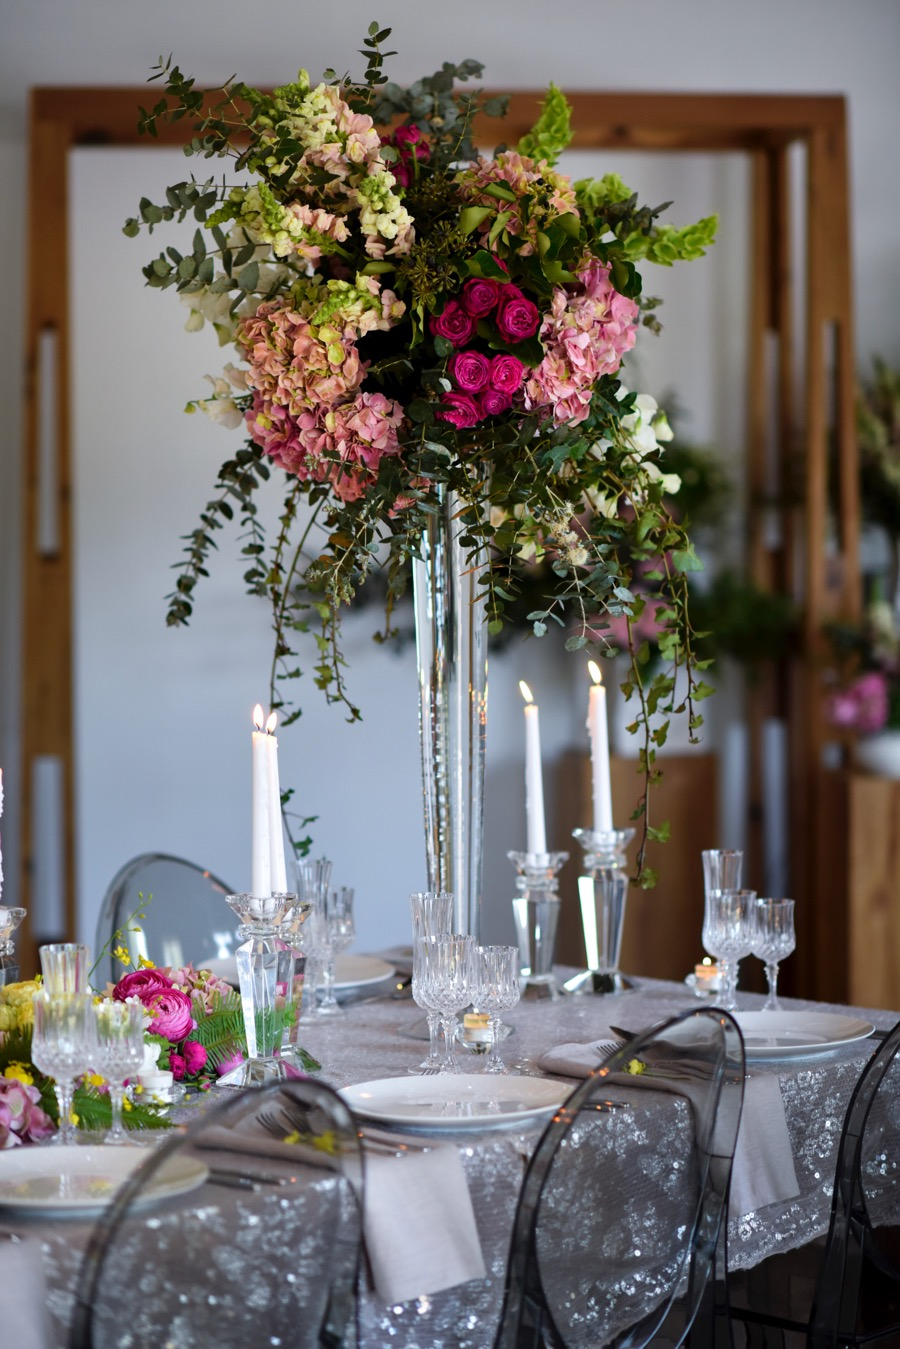 elegant glass vases of summery blooms, perfect for an indoor Darwin wedding reception, created by Beija Flor, Darwin wedding expert florists